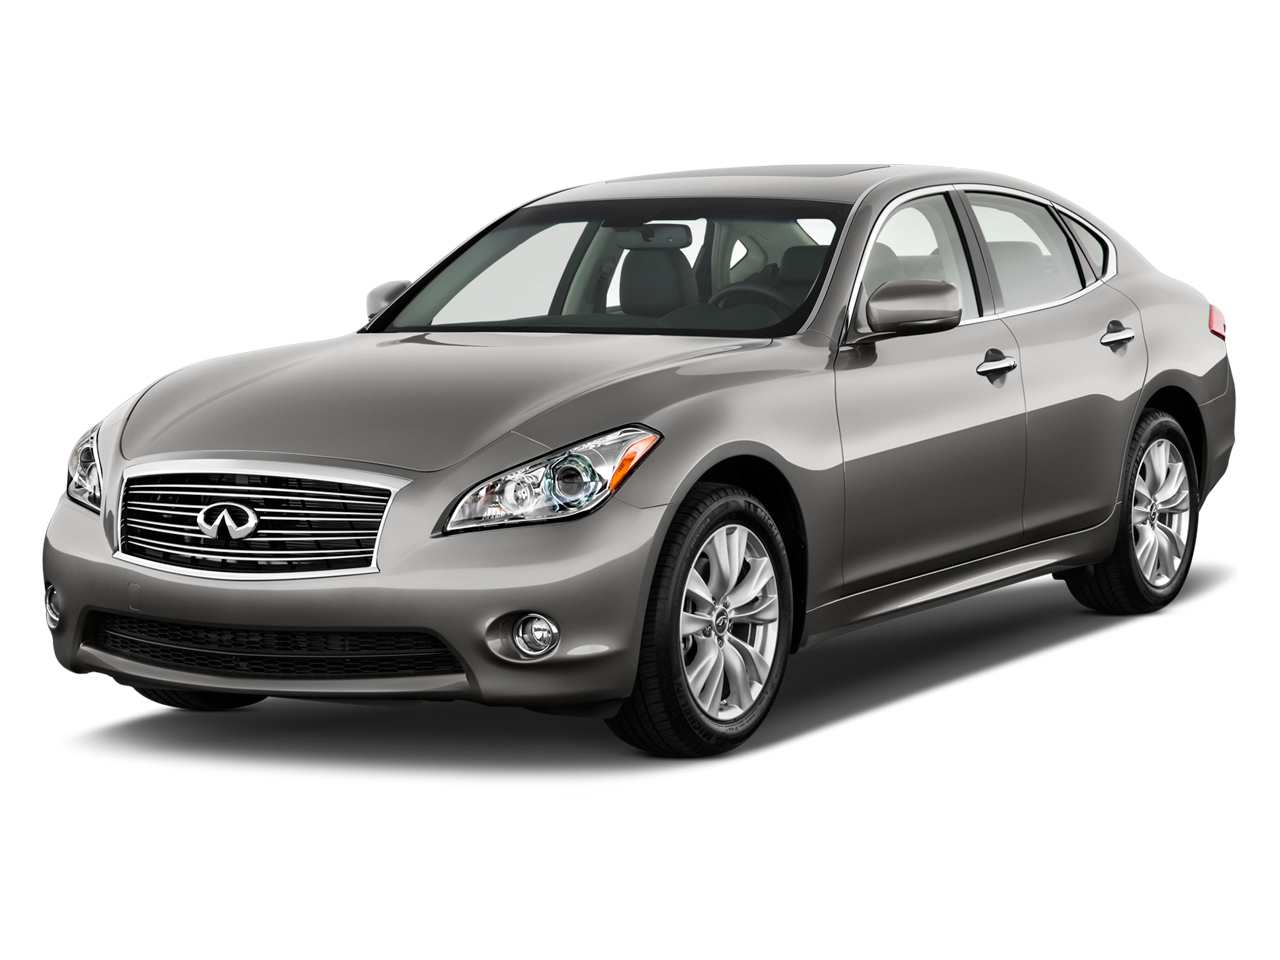 2012 infiniti m56 review ratings specs prices and photos the car connection. Black Bedroom Furniture Sets. Home Design Ideas